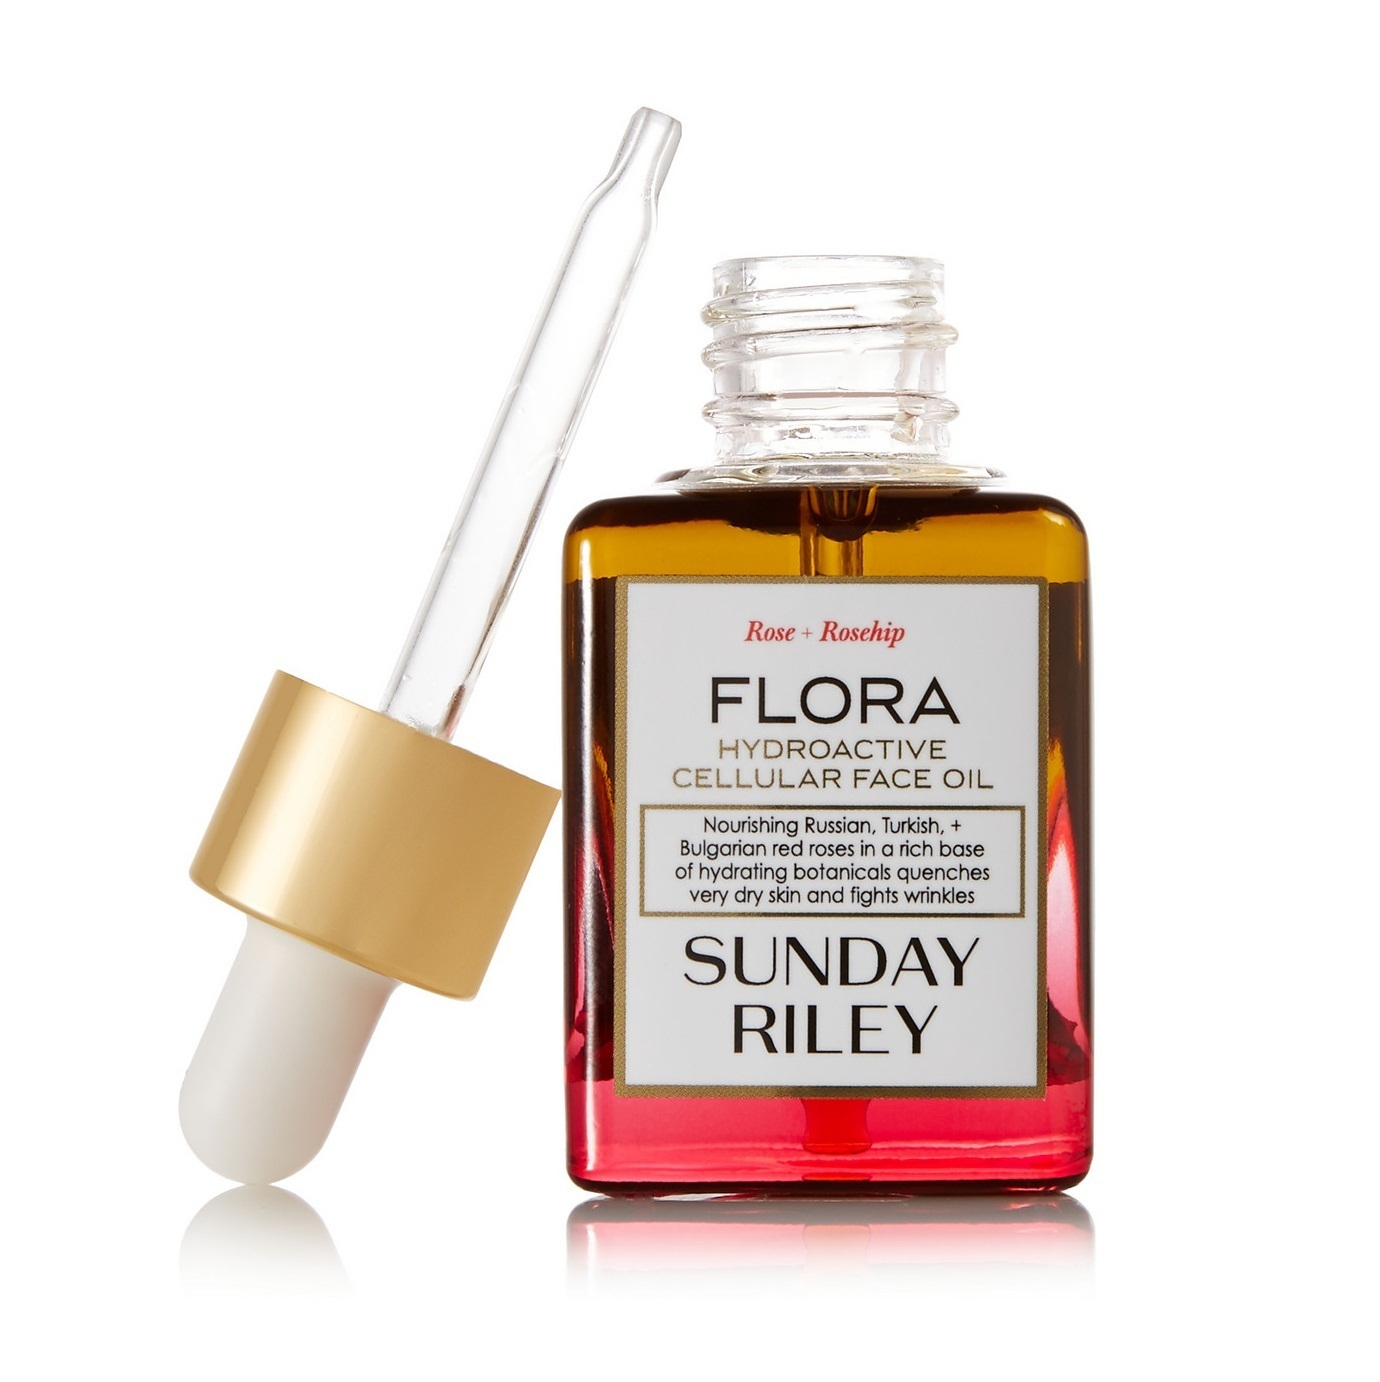 【SUNDAY RILEY】Flora Hydroactive Cellular Face Oil